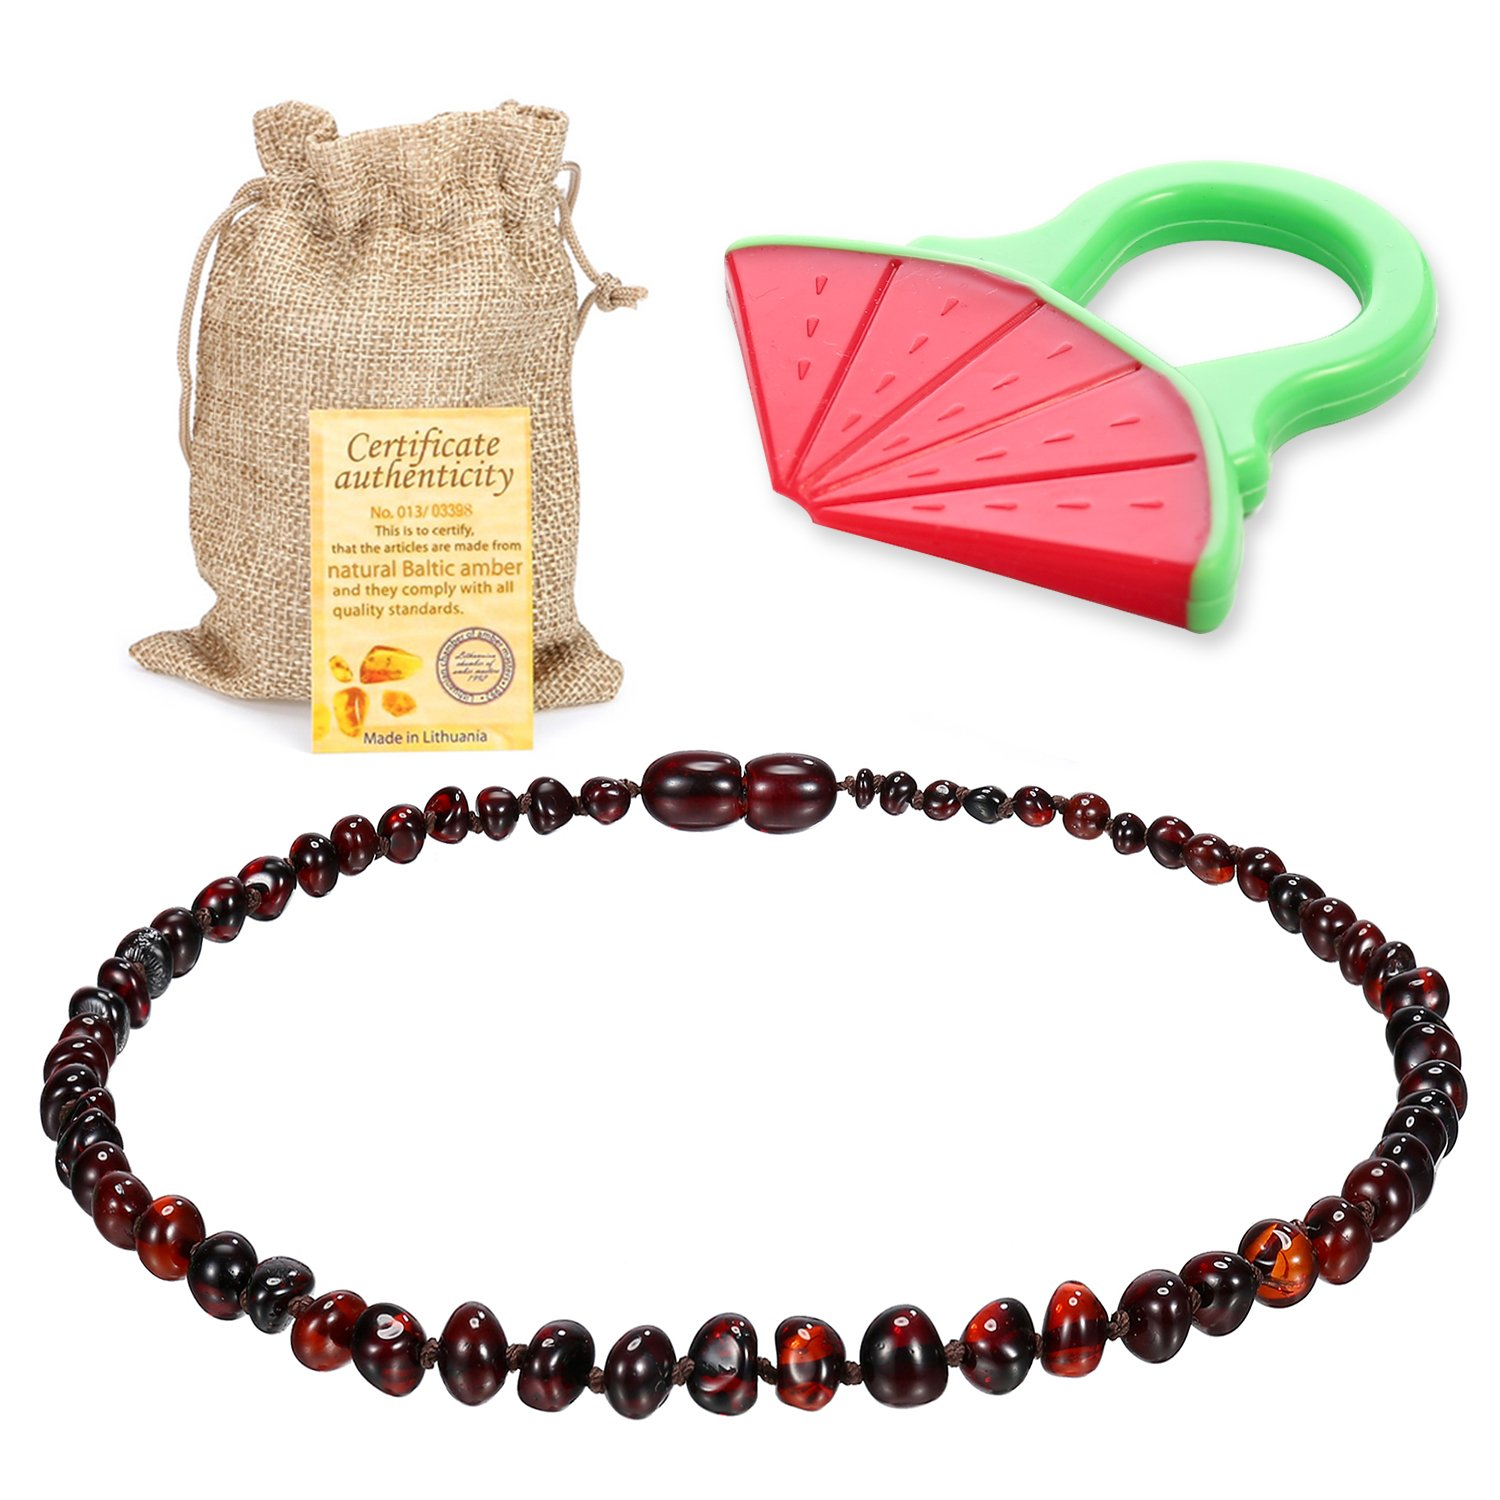 Baby Baltic Amber Teething Necklace Jewelry - (Cherry) Anti-Flammatory, Drooling & Free Teething Toy Pain Reduce - Reduces Tension and Fear, Teething Necklace For 3 to 36 Months Babies,Boys and Girls by Sweetie House (Image #1)